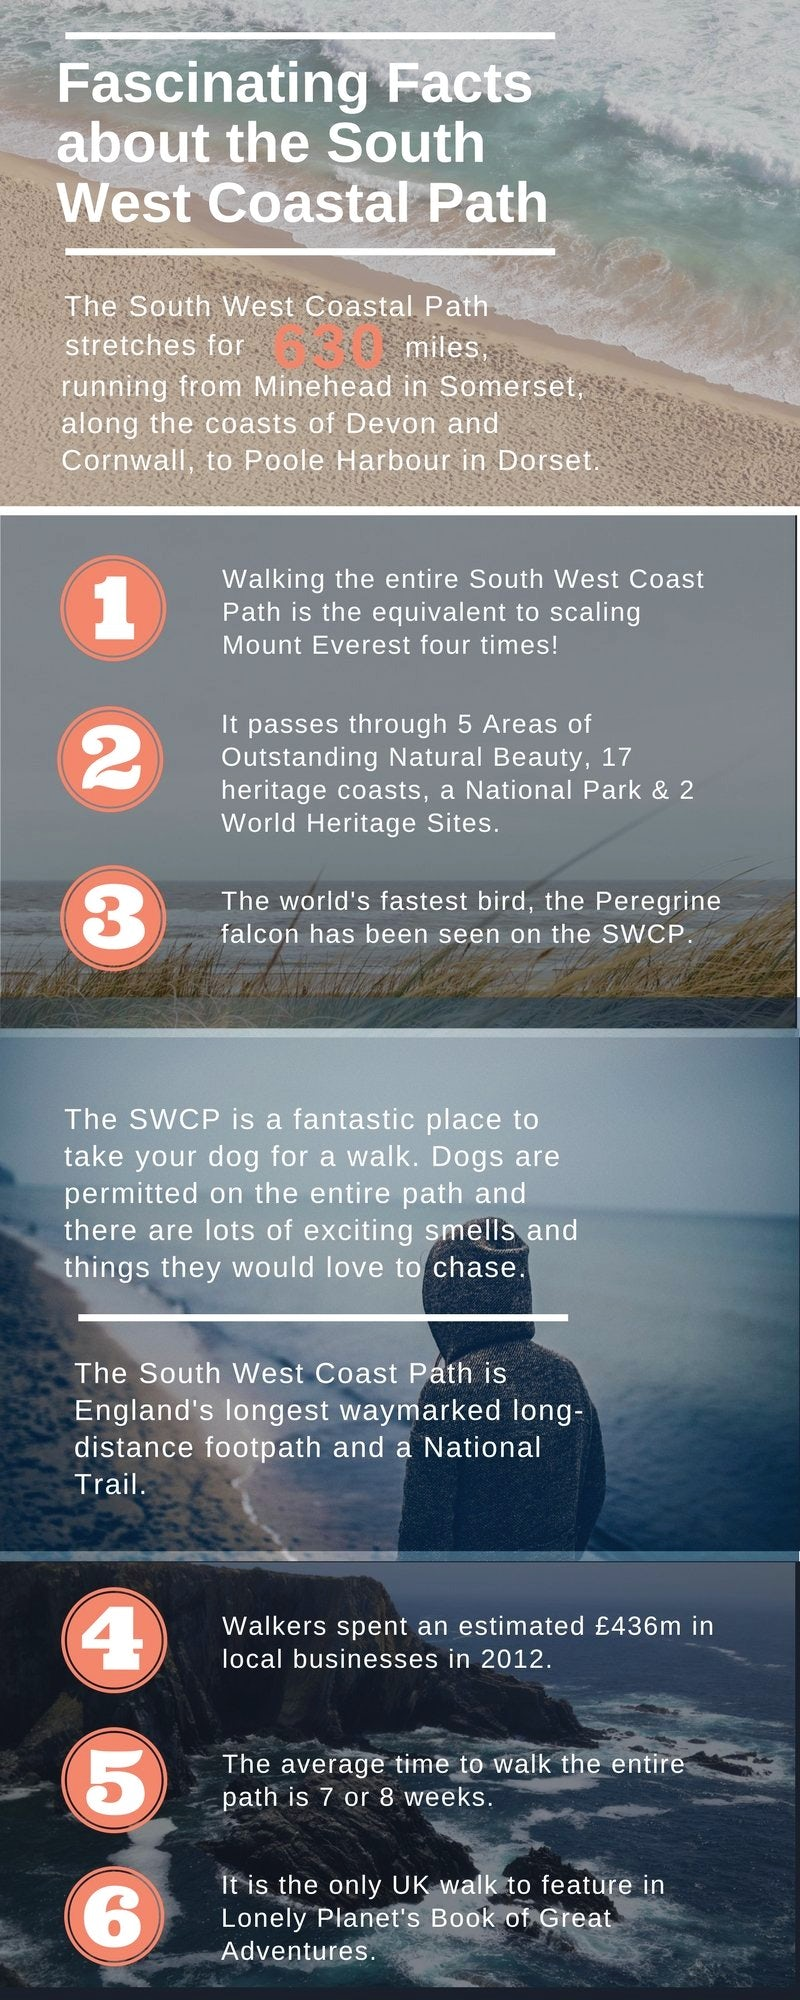 Fascinating Facts about the South West Coastal Path | JFH Infographic